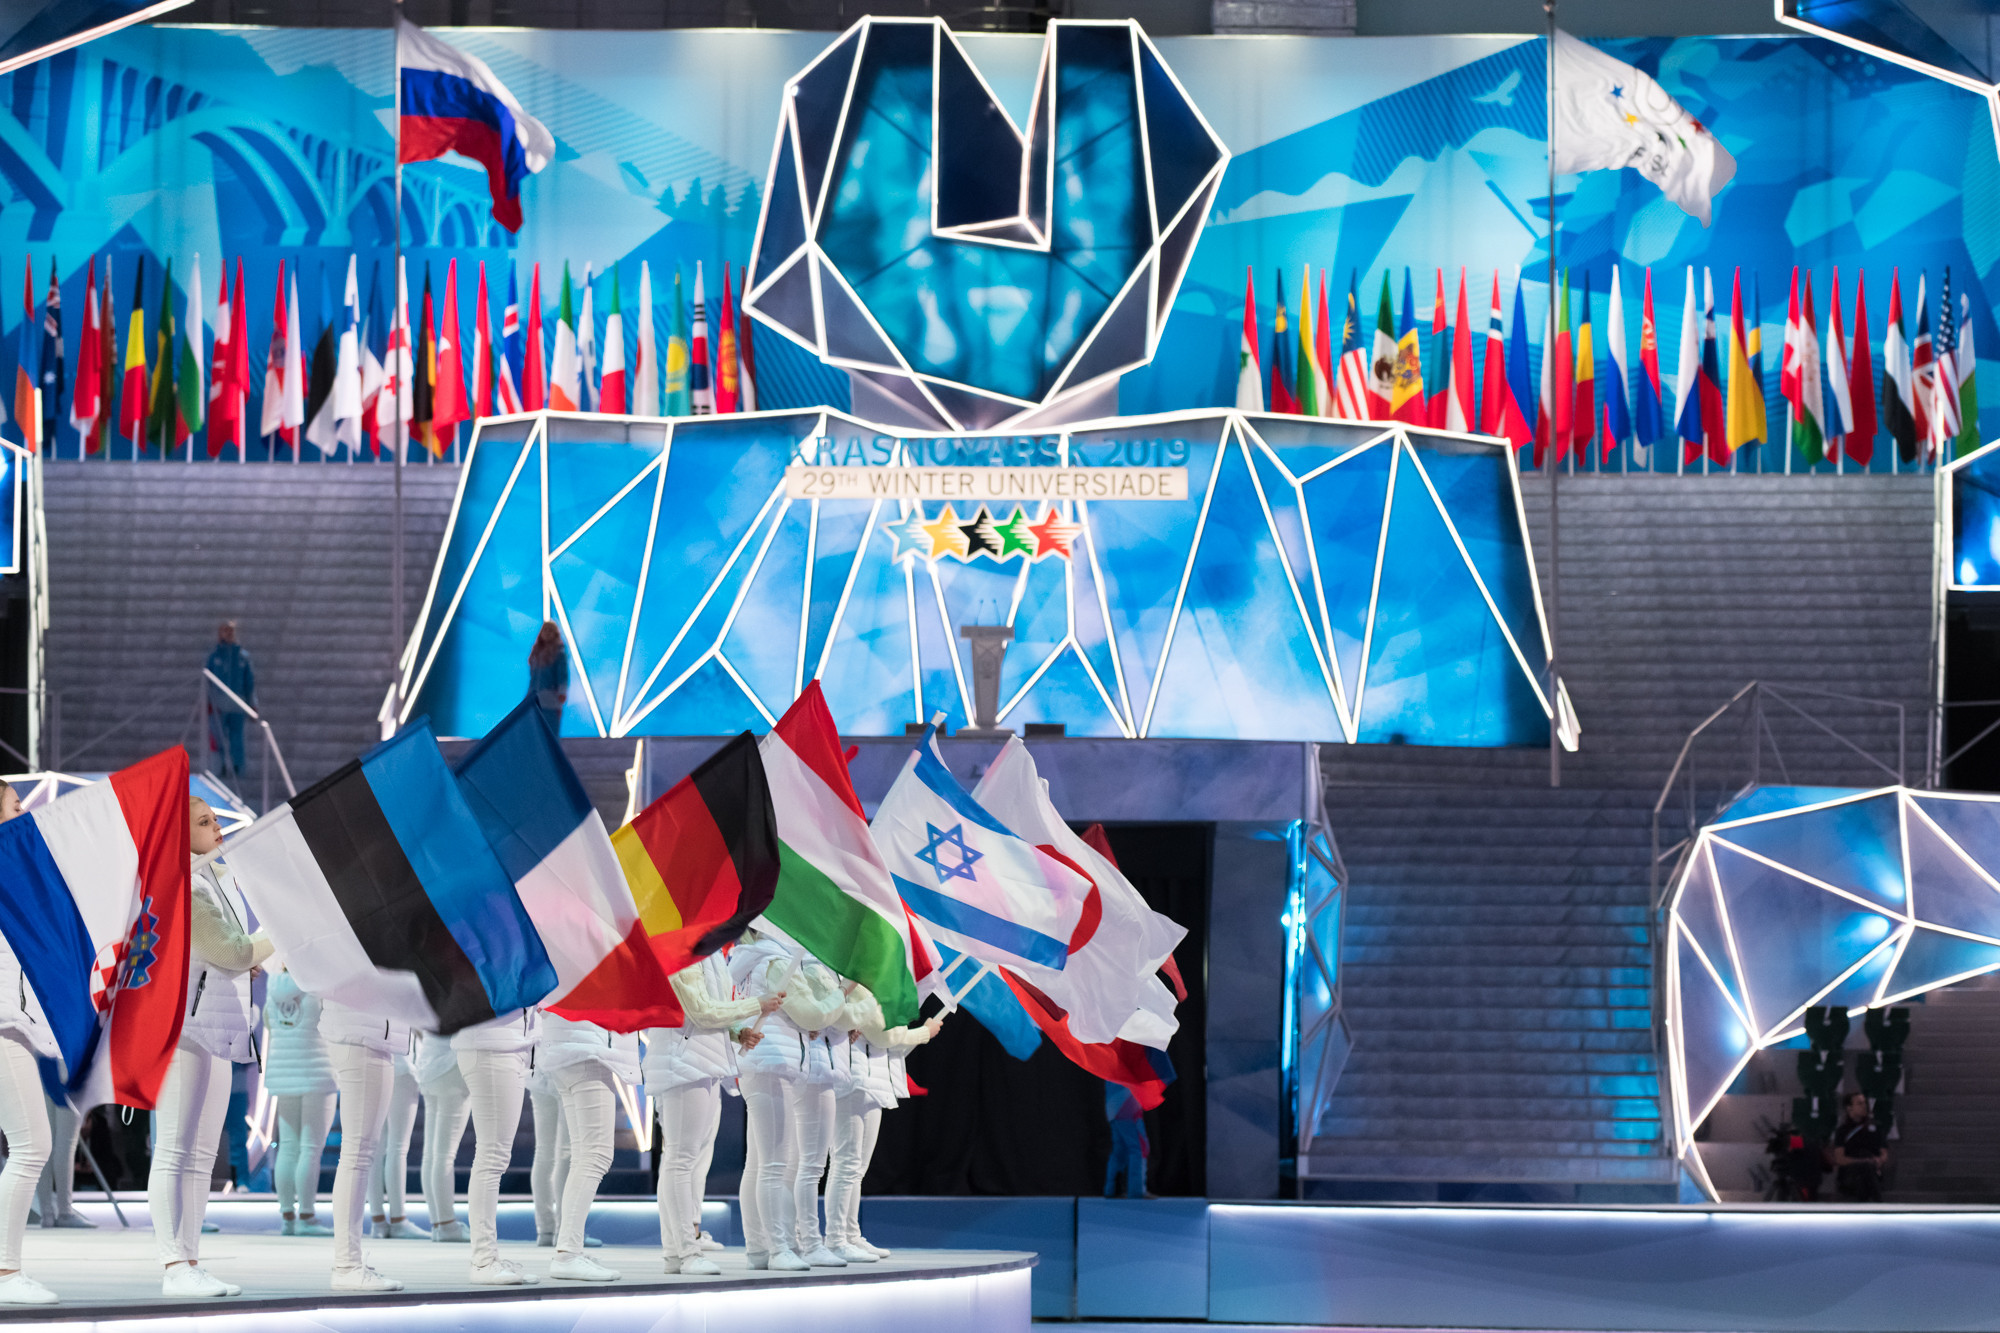 Closing Ceremony marks the end of Krasnoyarsk 2019 Winter Universiade